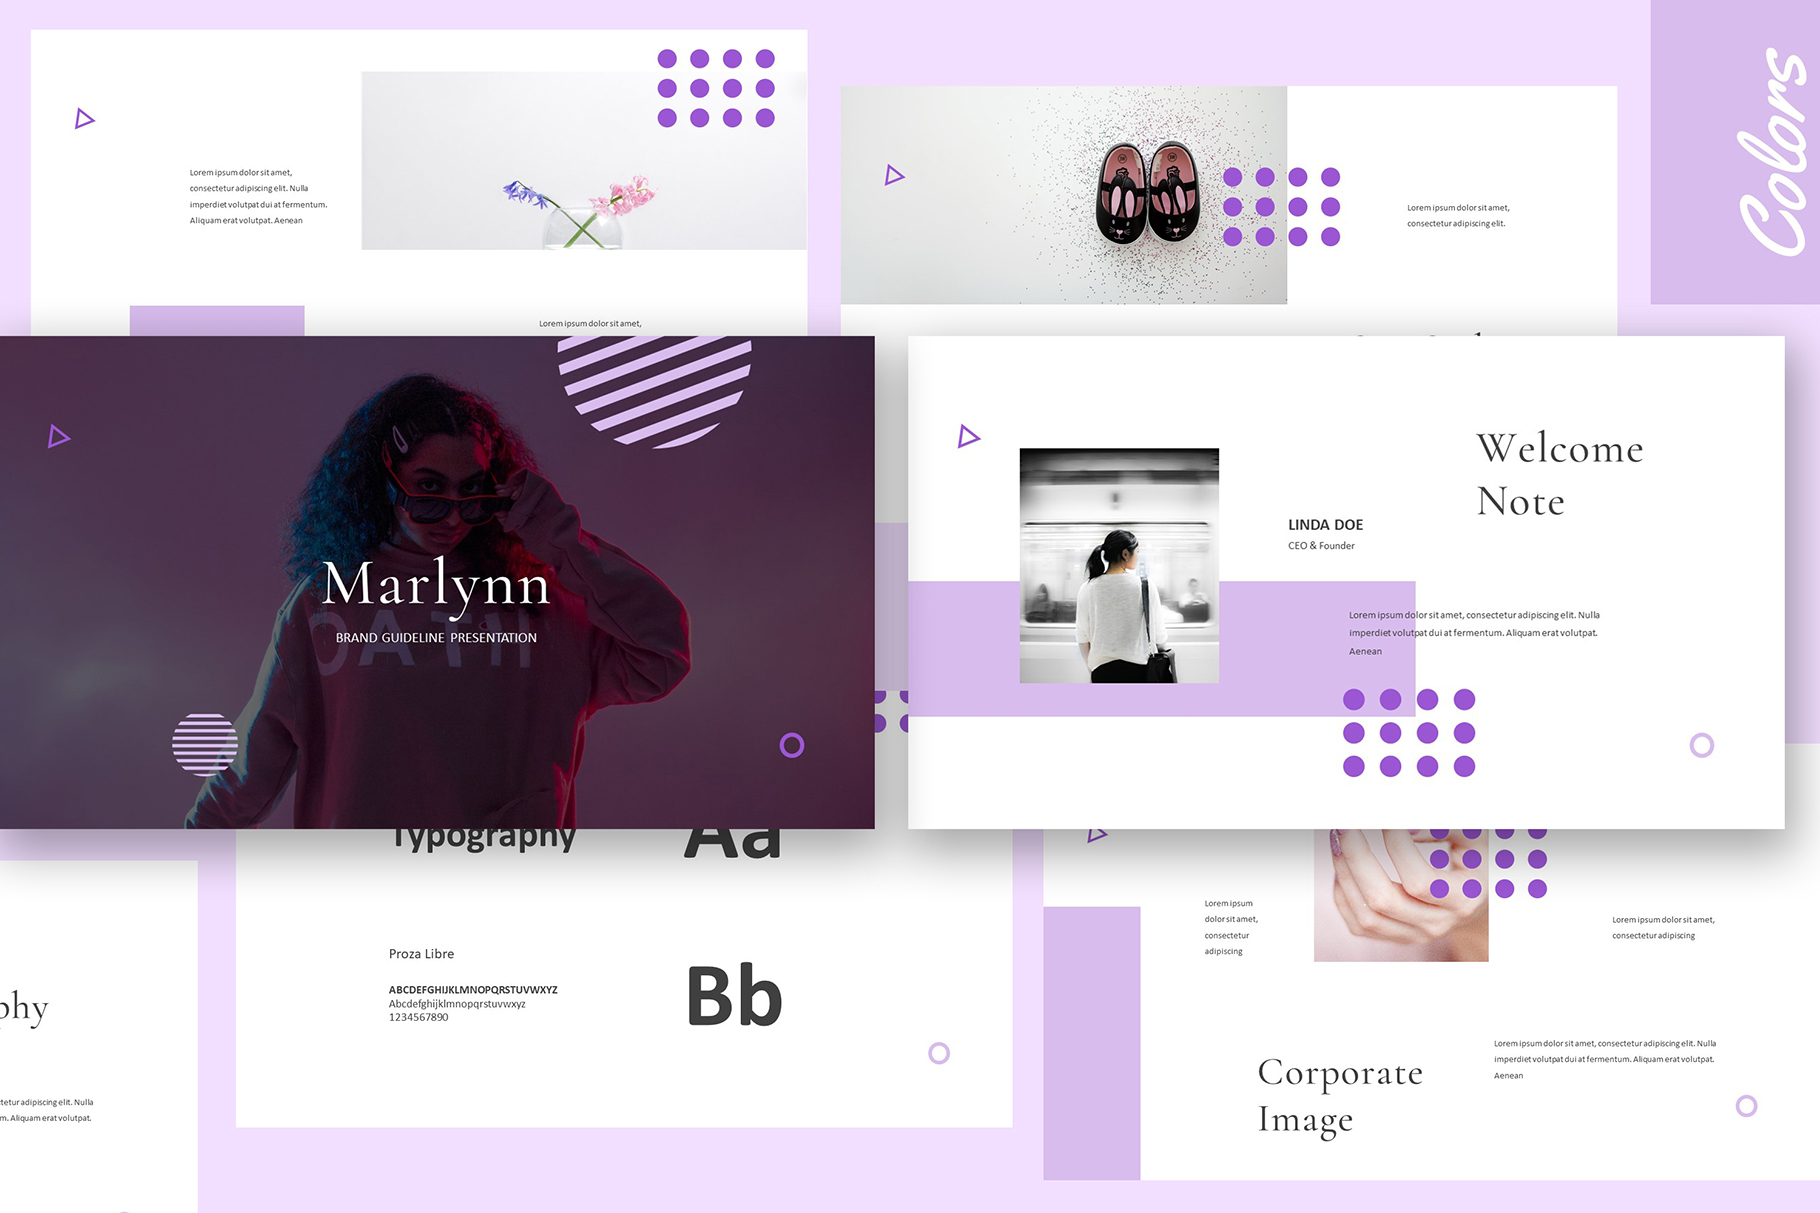 Marlynn Brand Guidelines Powerpoint example image 2